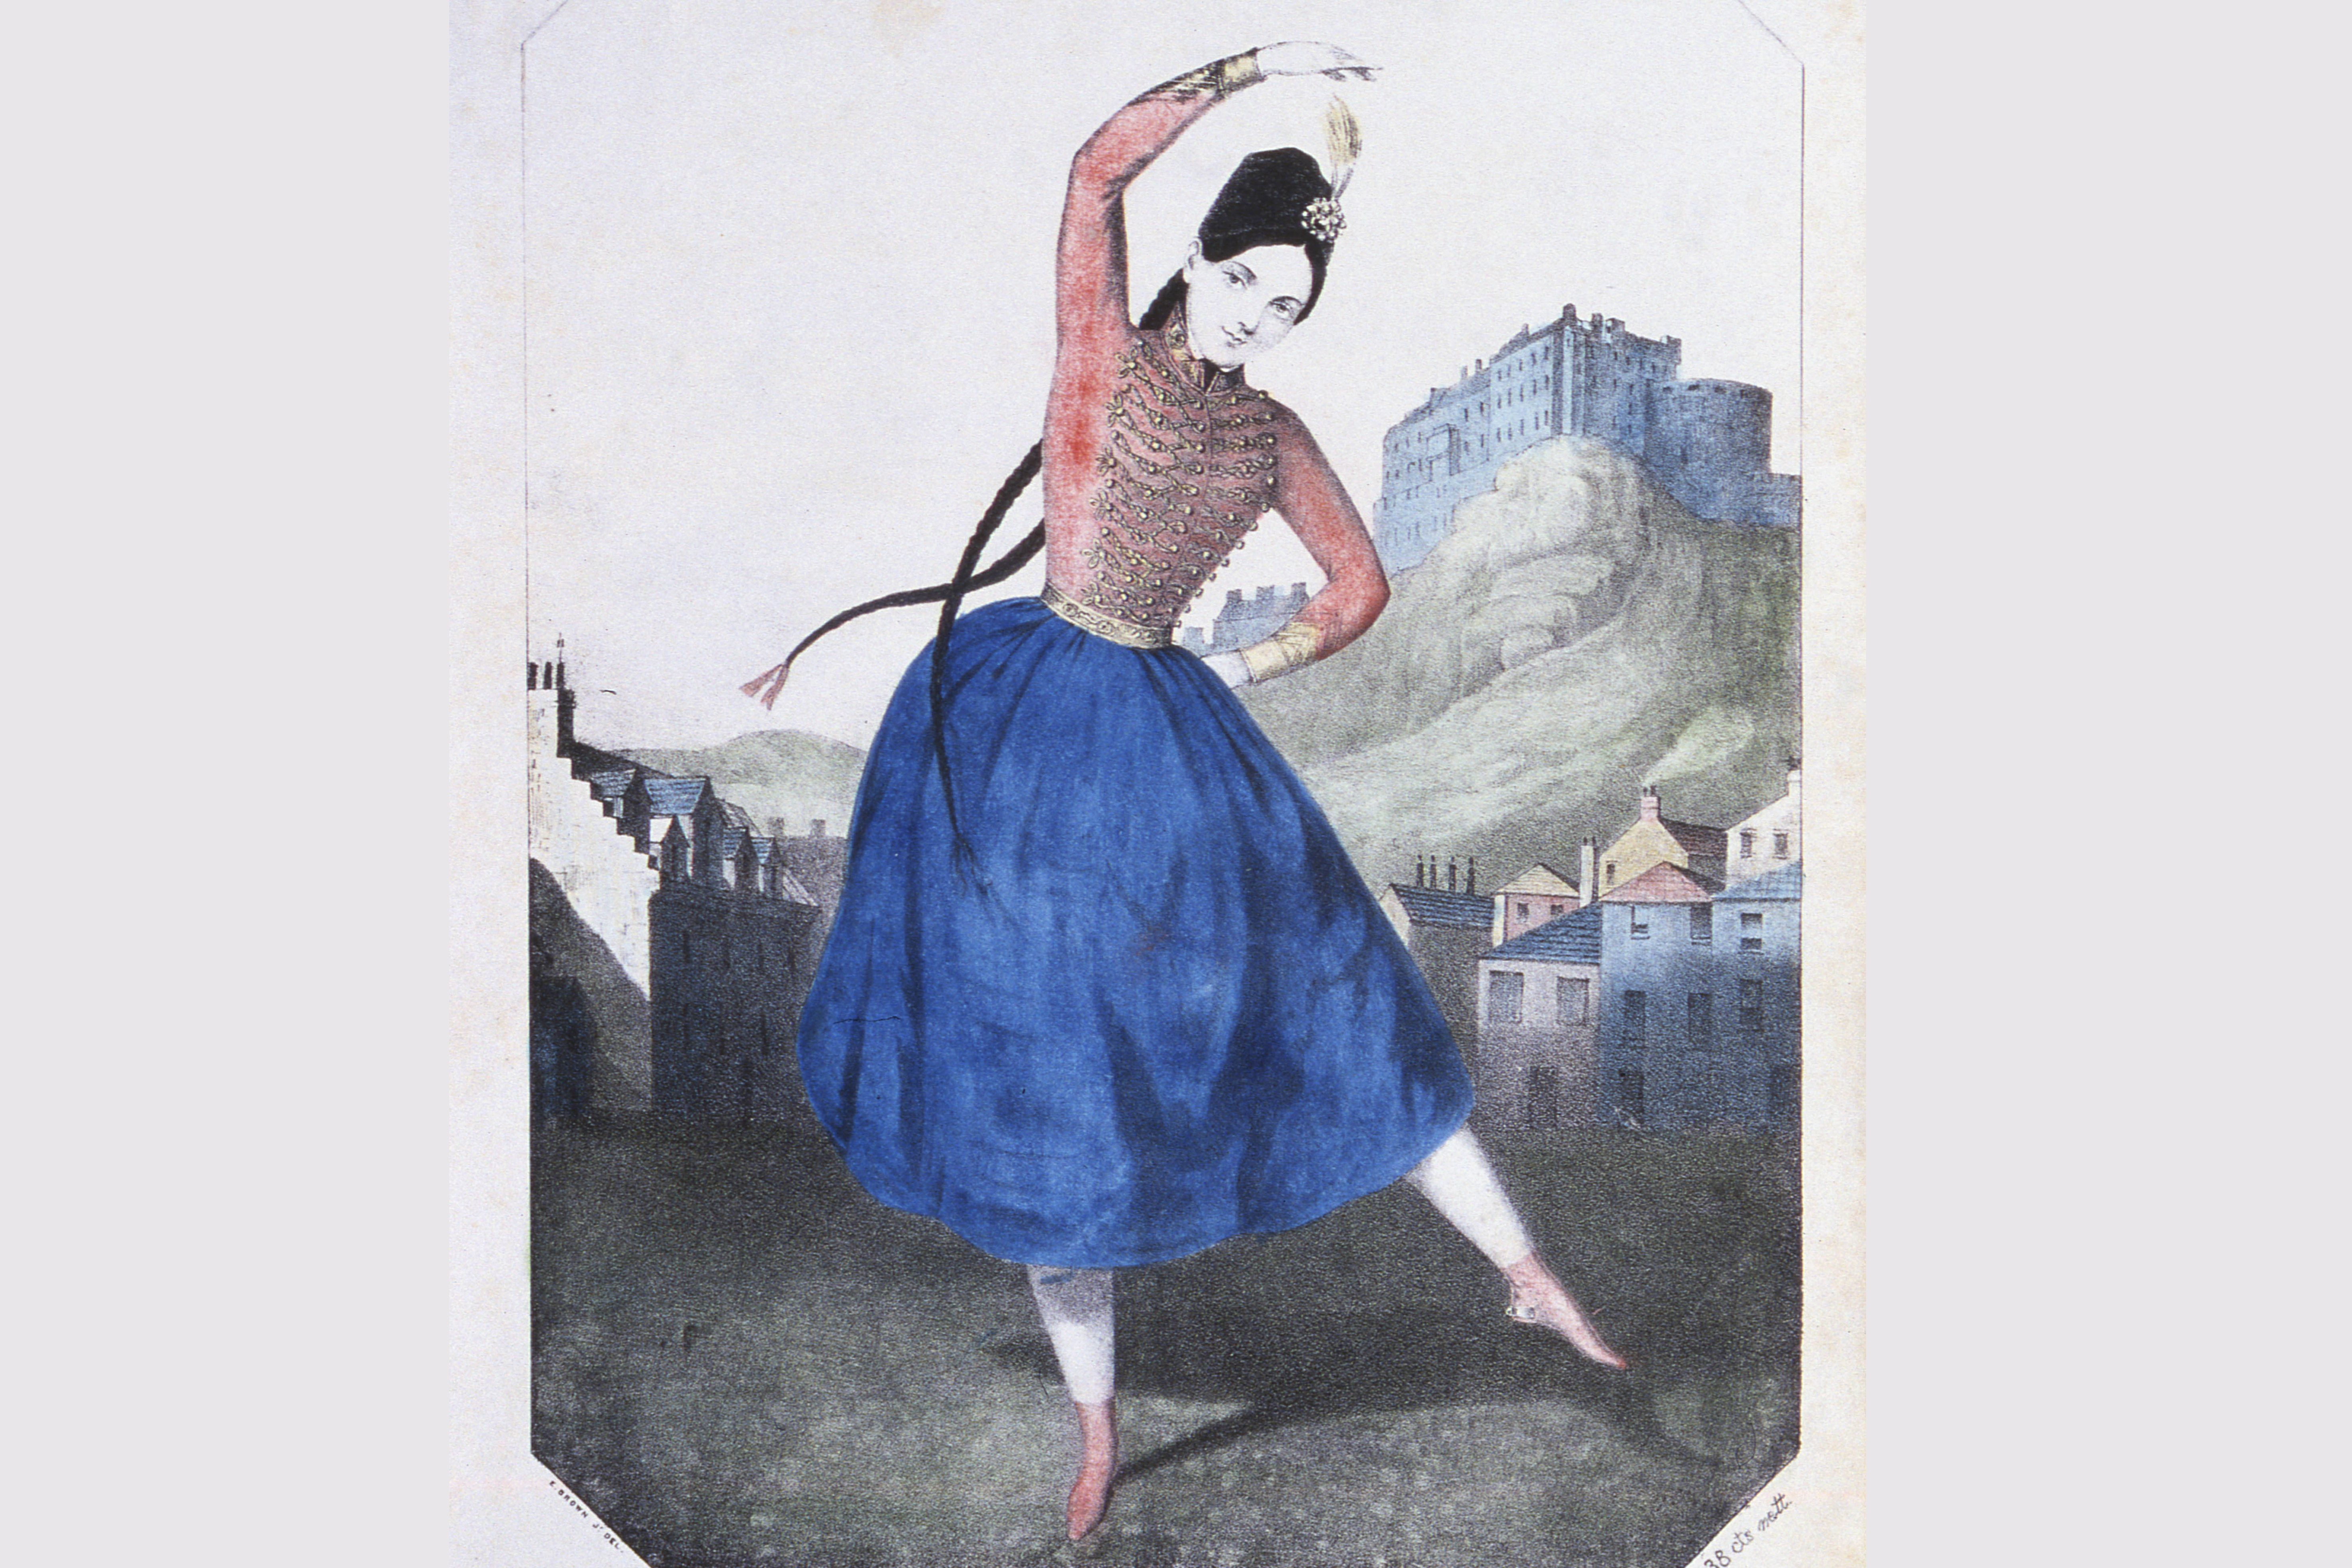 Fannie Elssler and her Cracovienne Dance, music cover, 1850